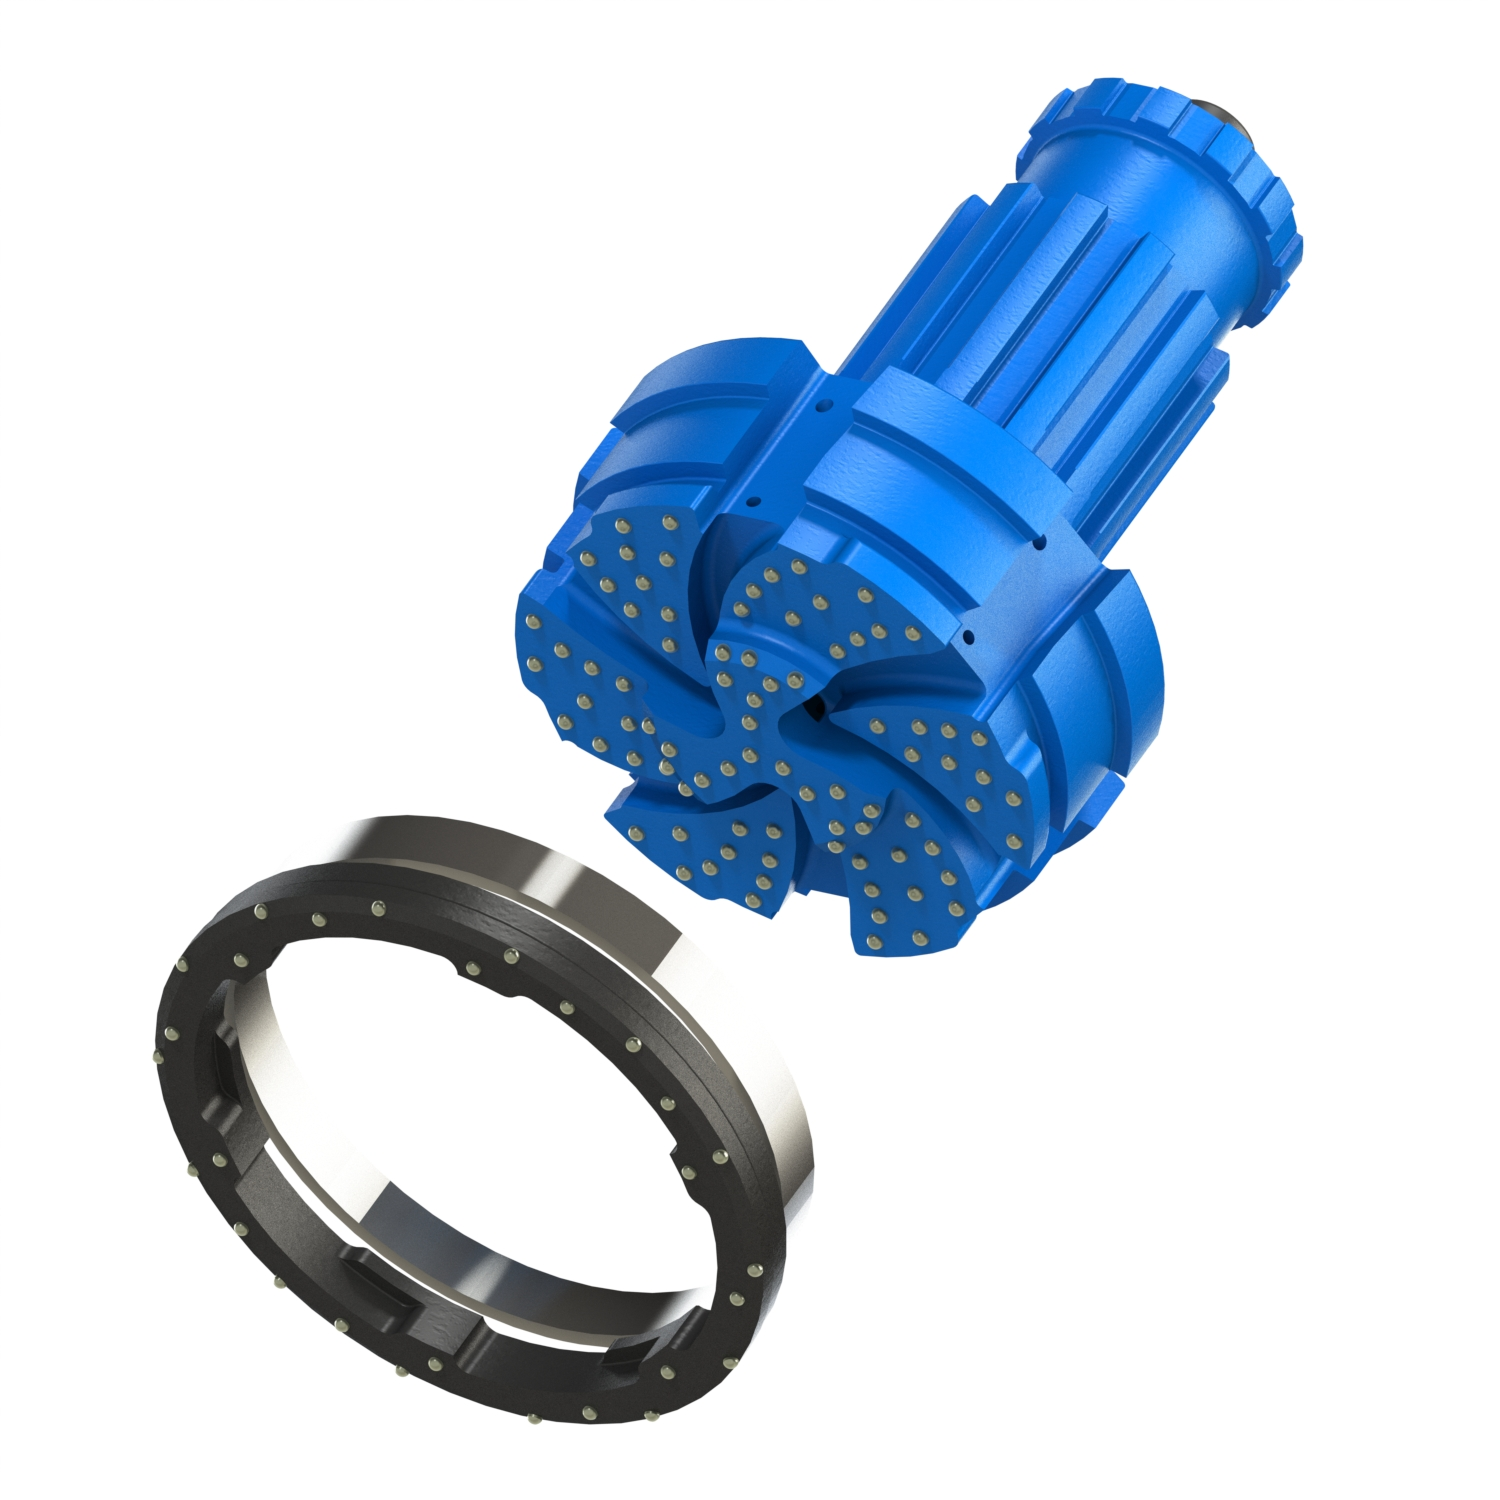 Mincon Solitary Ring-Bit Systems